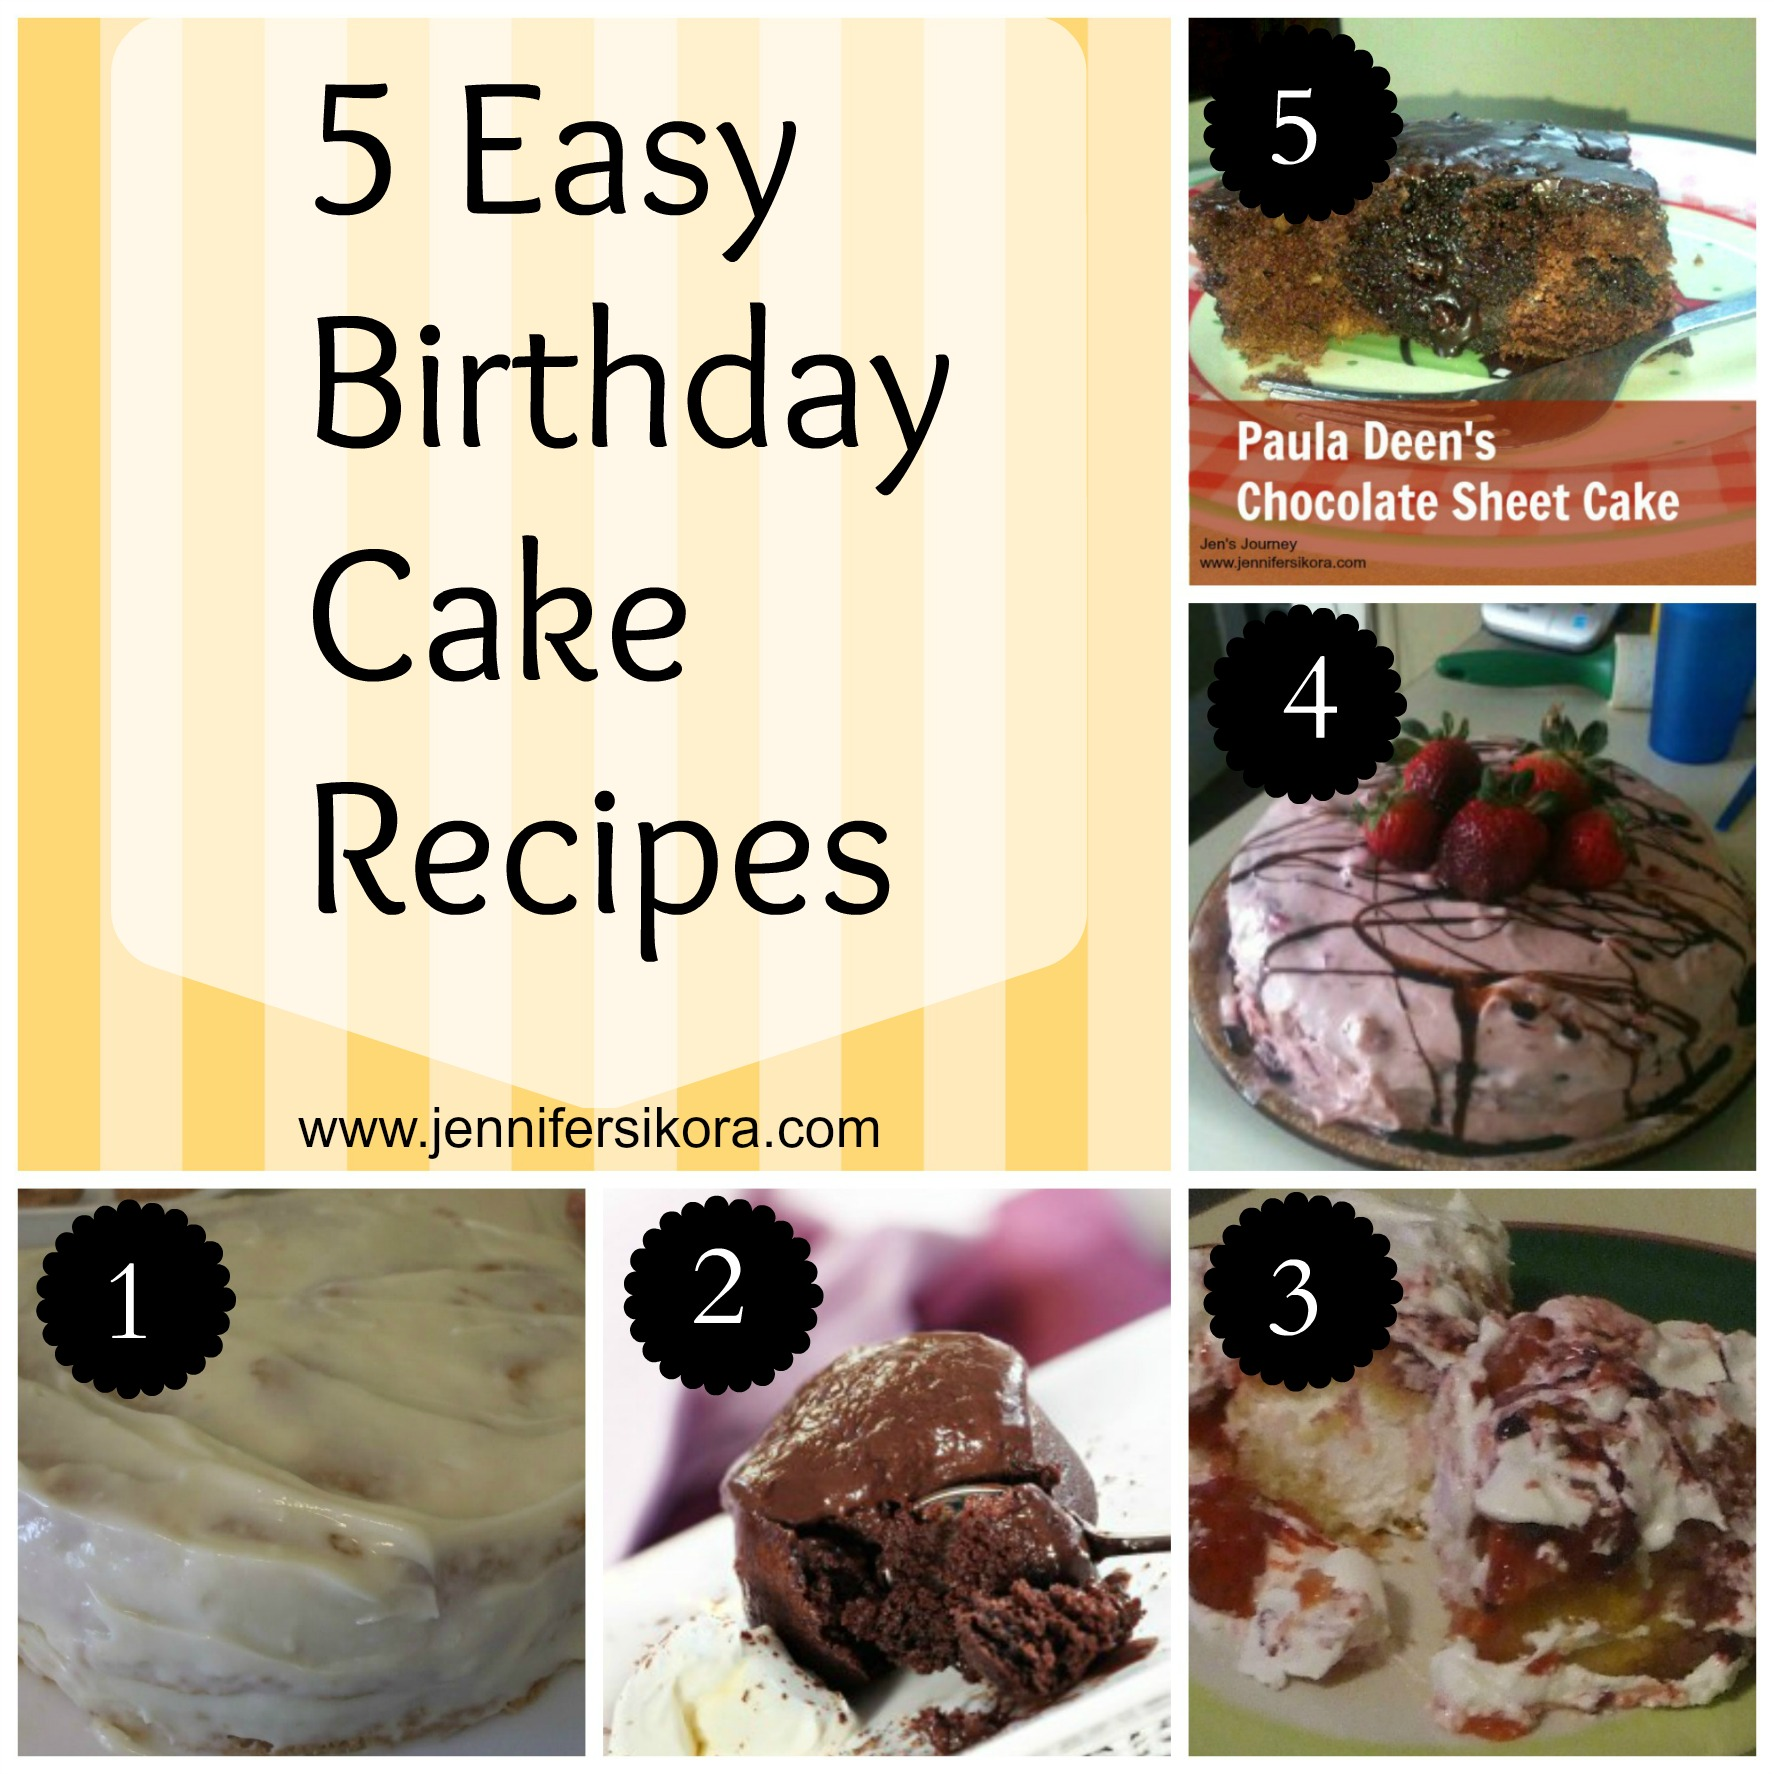 5 Easy Birthday Cake Recipes